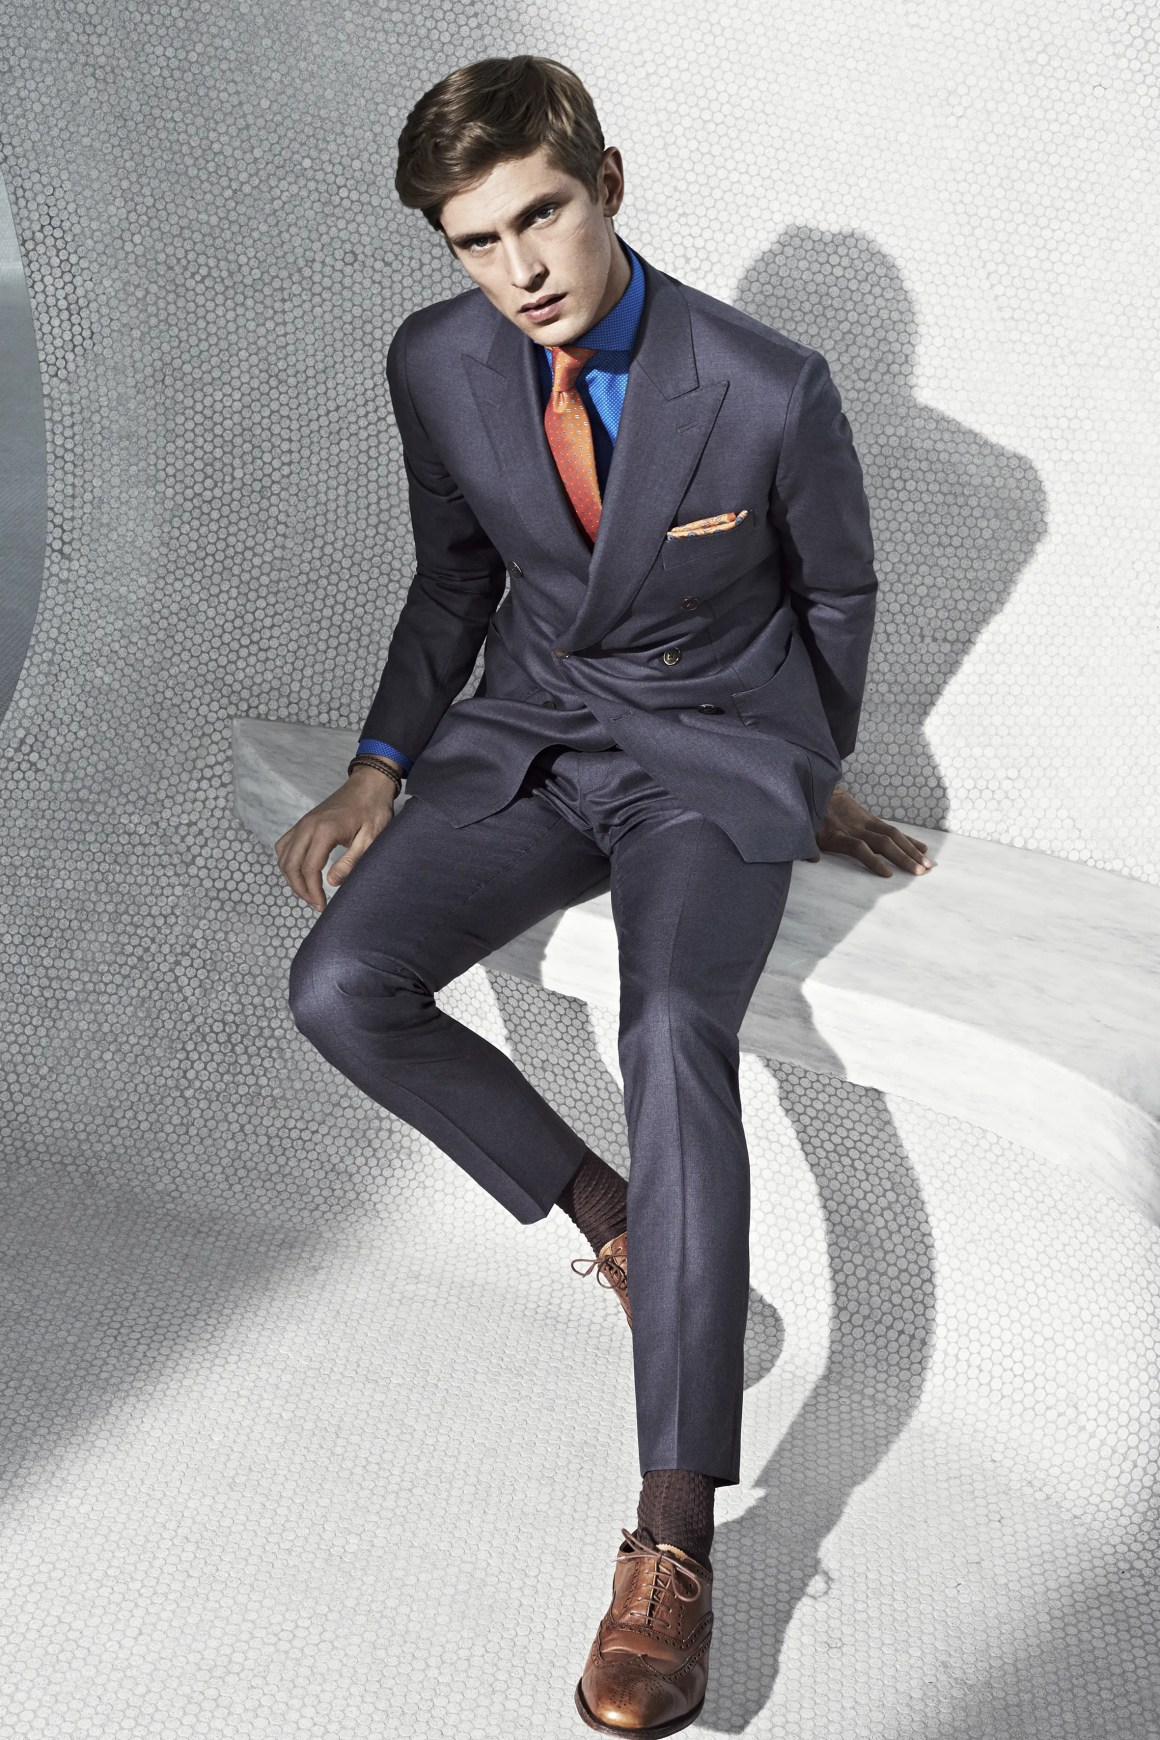 Eton of Sweden - a perfect blend of style and heritage - Ape to Gentleman